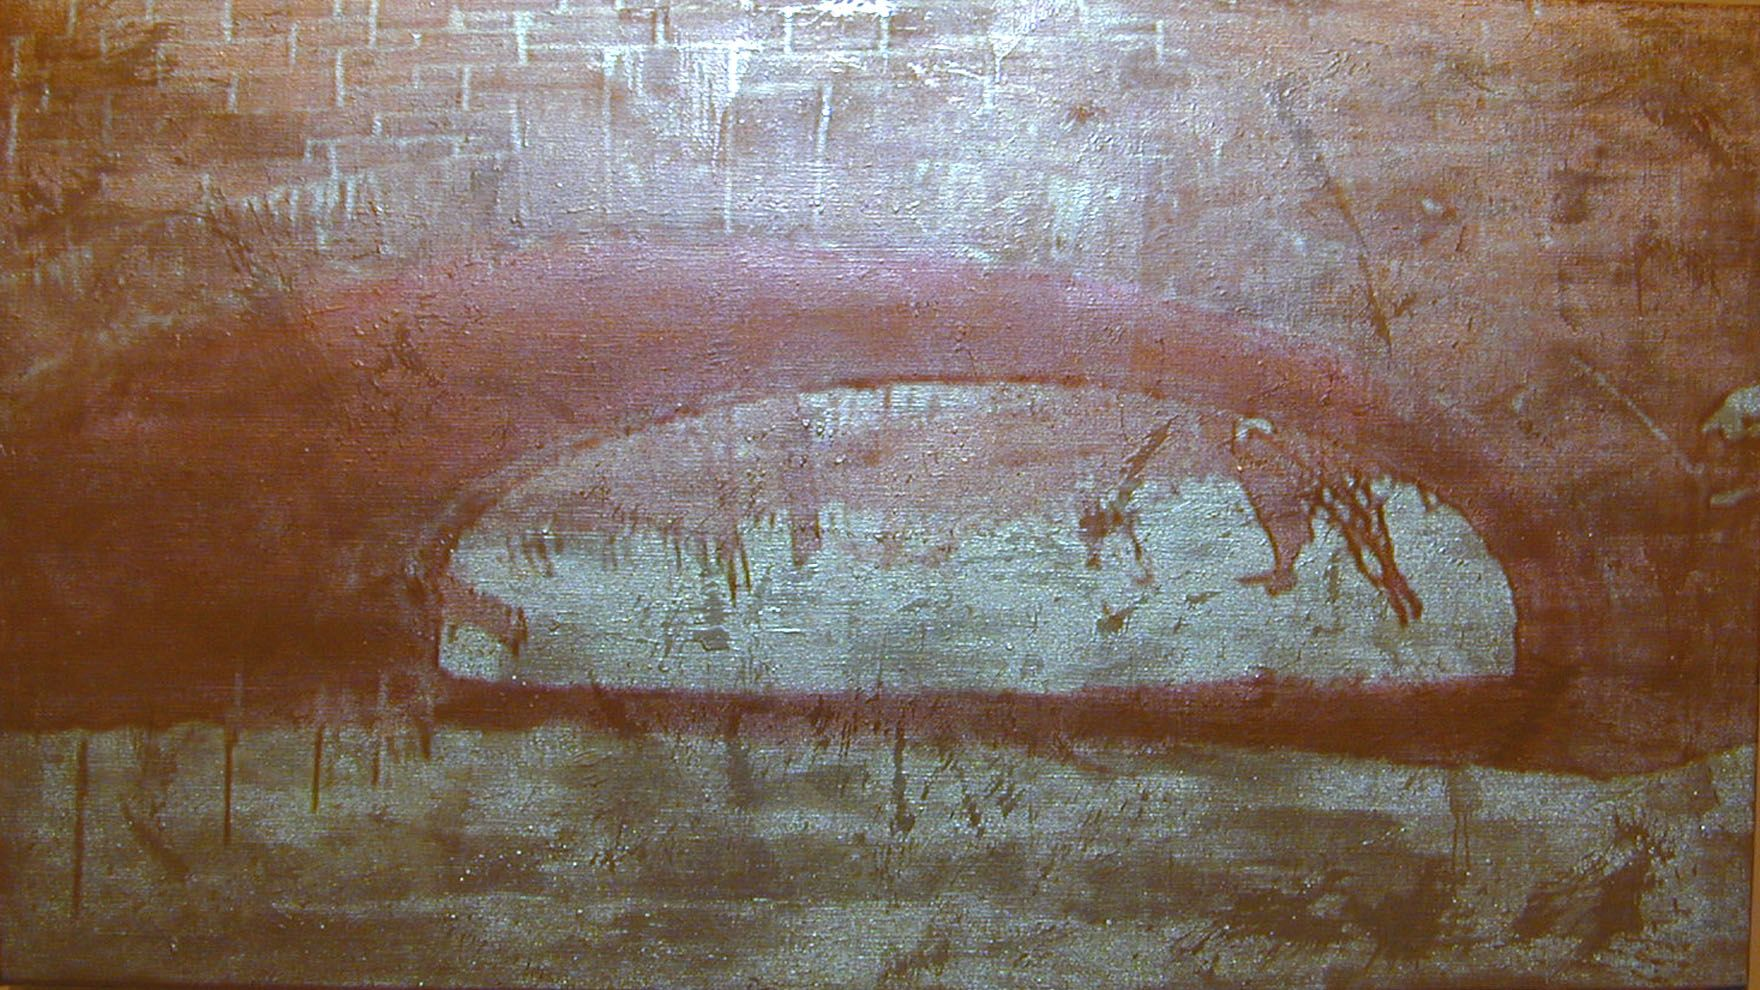 Gold / Tunnel, 2003, Video projection, oil and enamel on linen